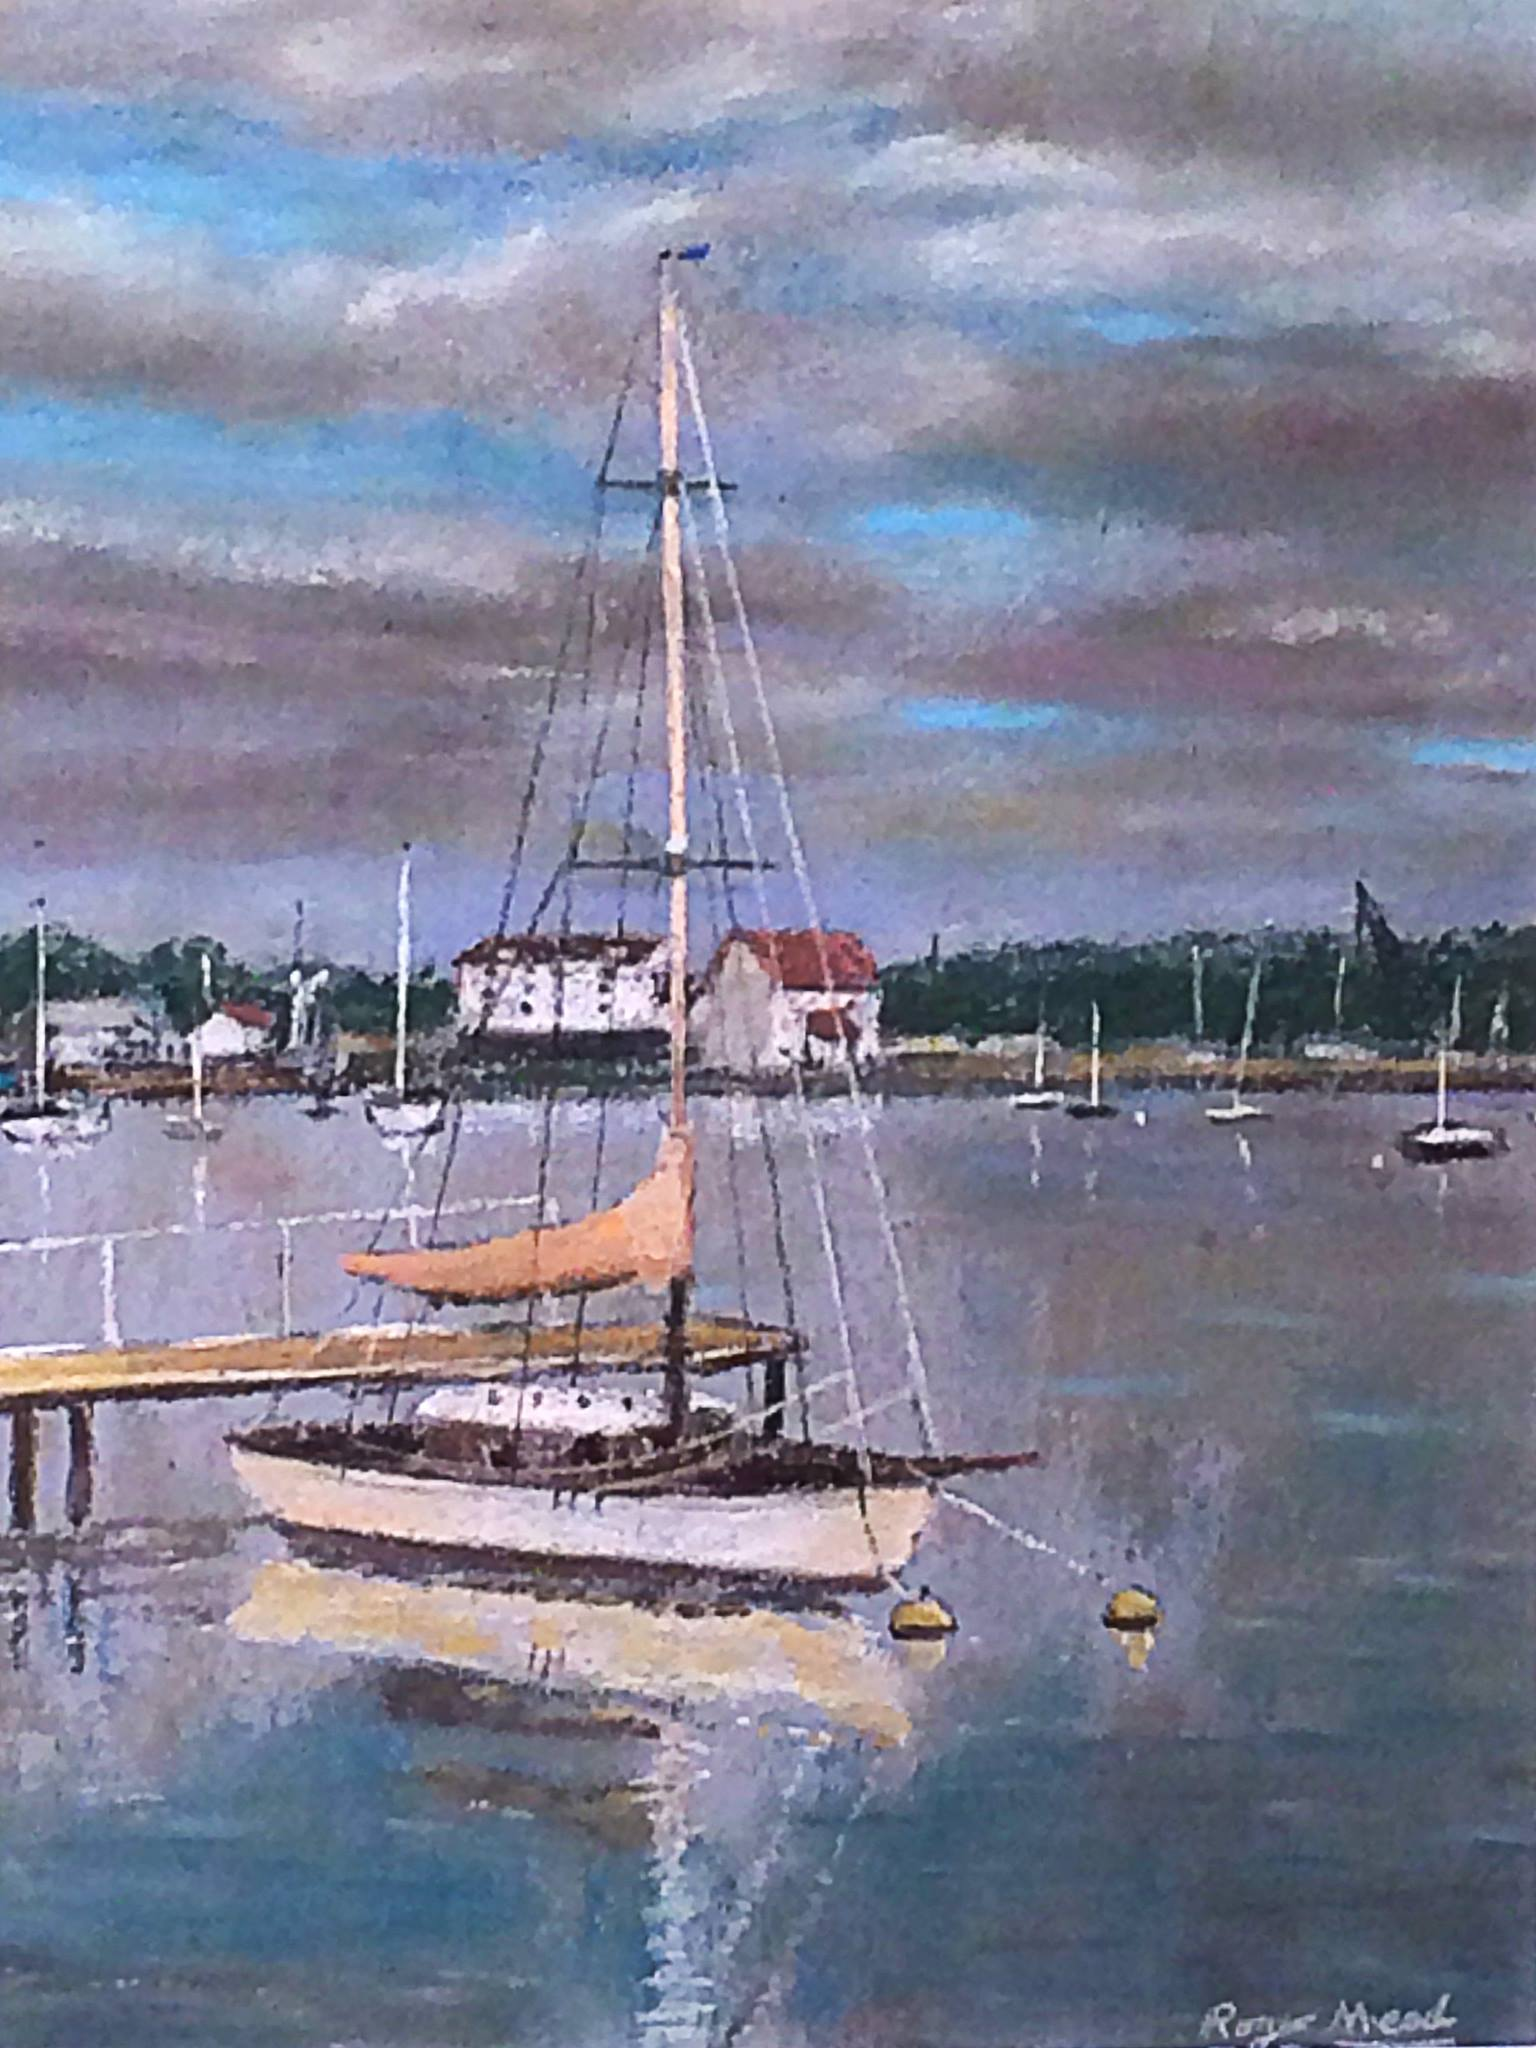 Woodbridge reflections, Pastel by Roger Mead